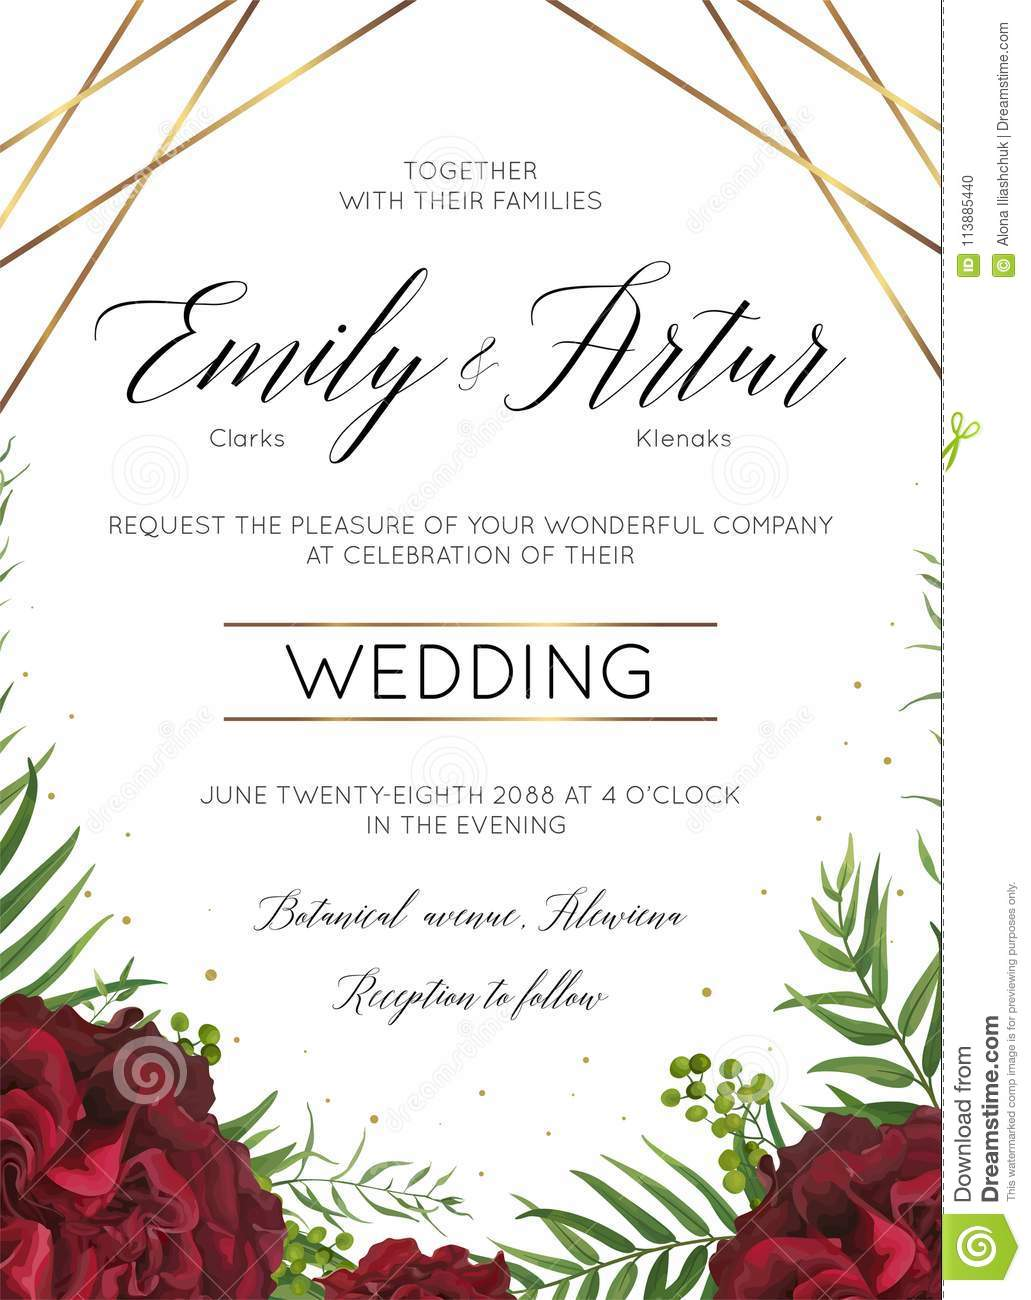 Wedding Floral Invite, Invitation Save The Date Card Design With ...